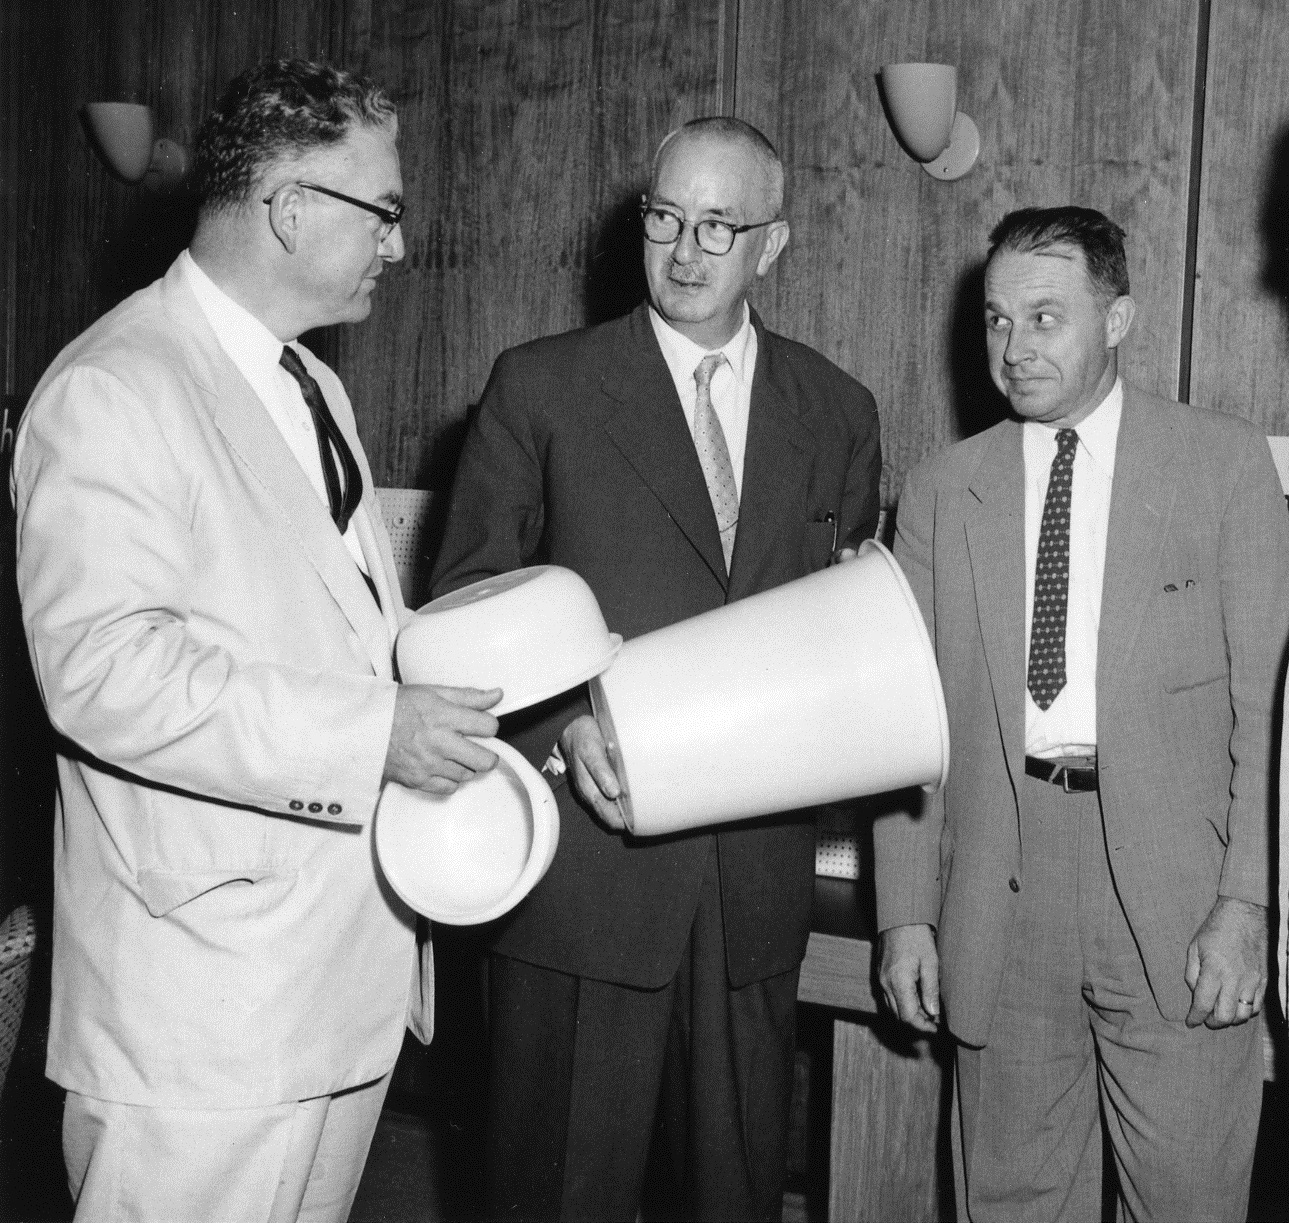 Karl Ziegler (center) with members of the Hercules group that commercialized high-density polyethylene as Hi-fax.